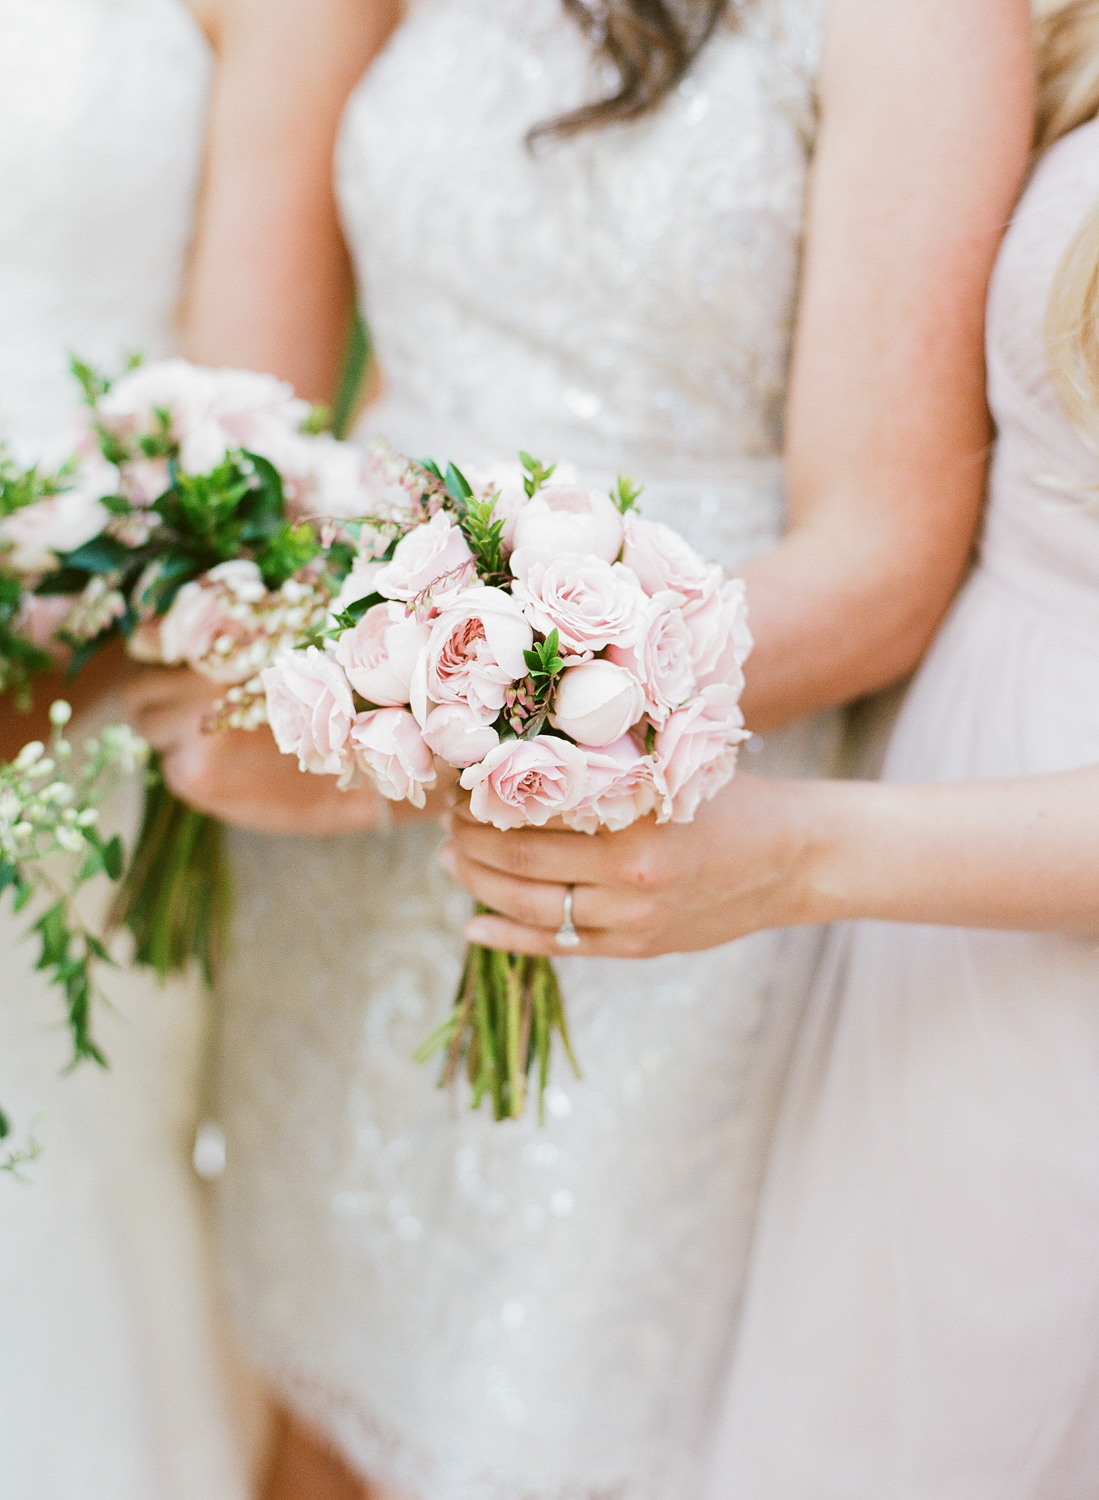 Blush pink roses make up the bridesmaids' bouquets; photo by Sylvie Gil